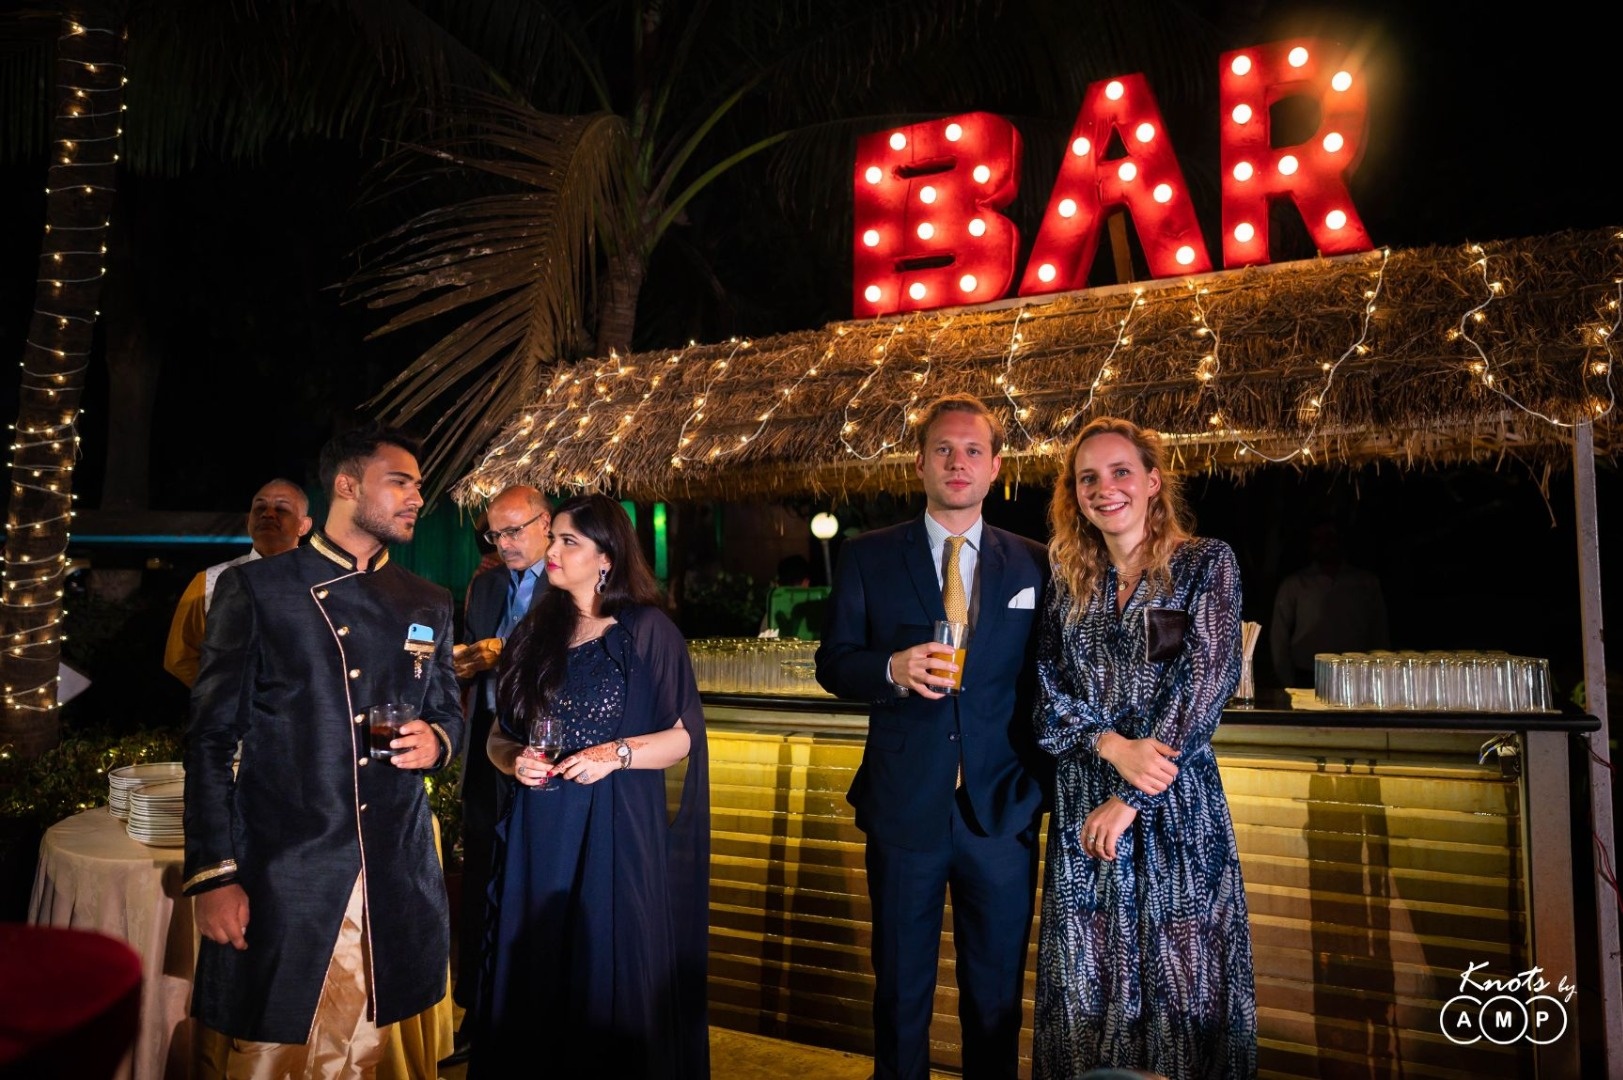 Guests at Wedding Bar with LED Lit BAR Sign